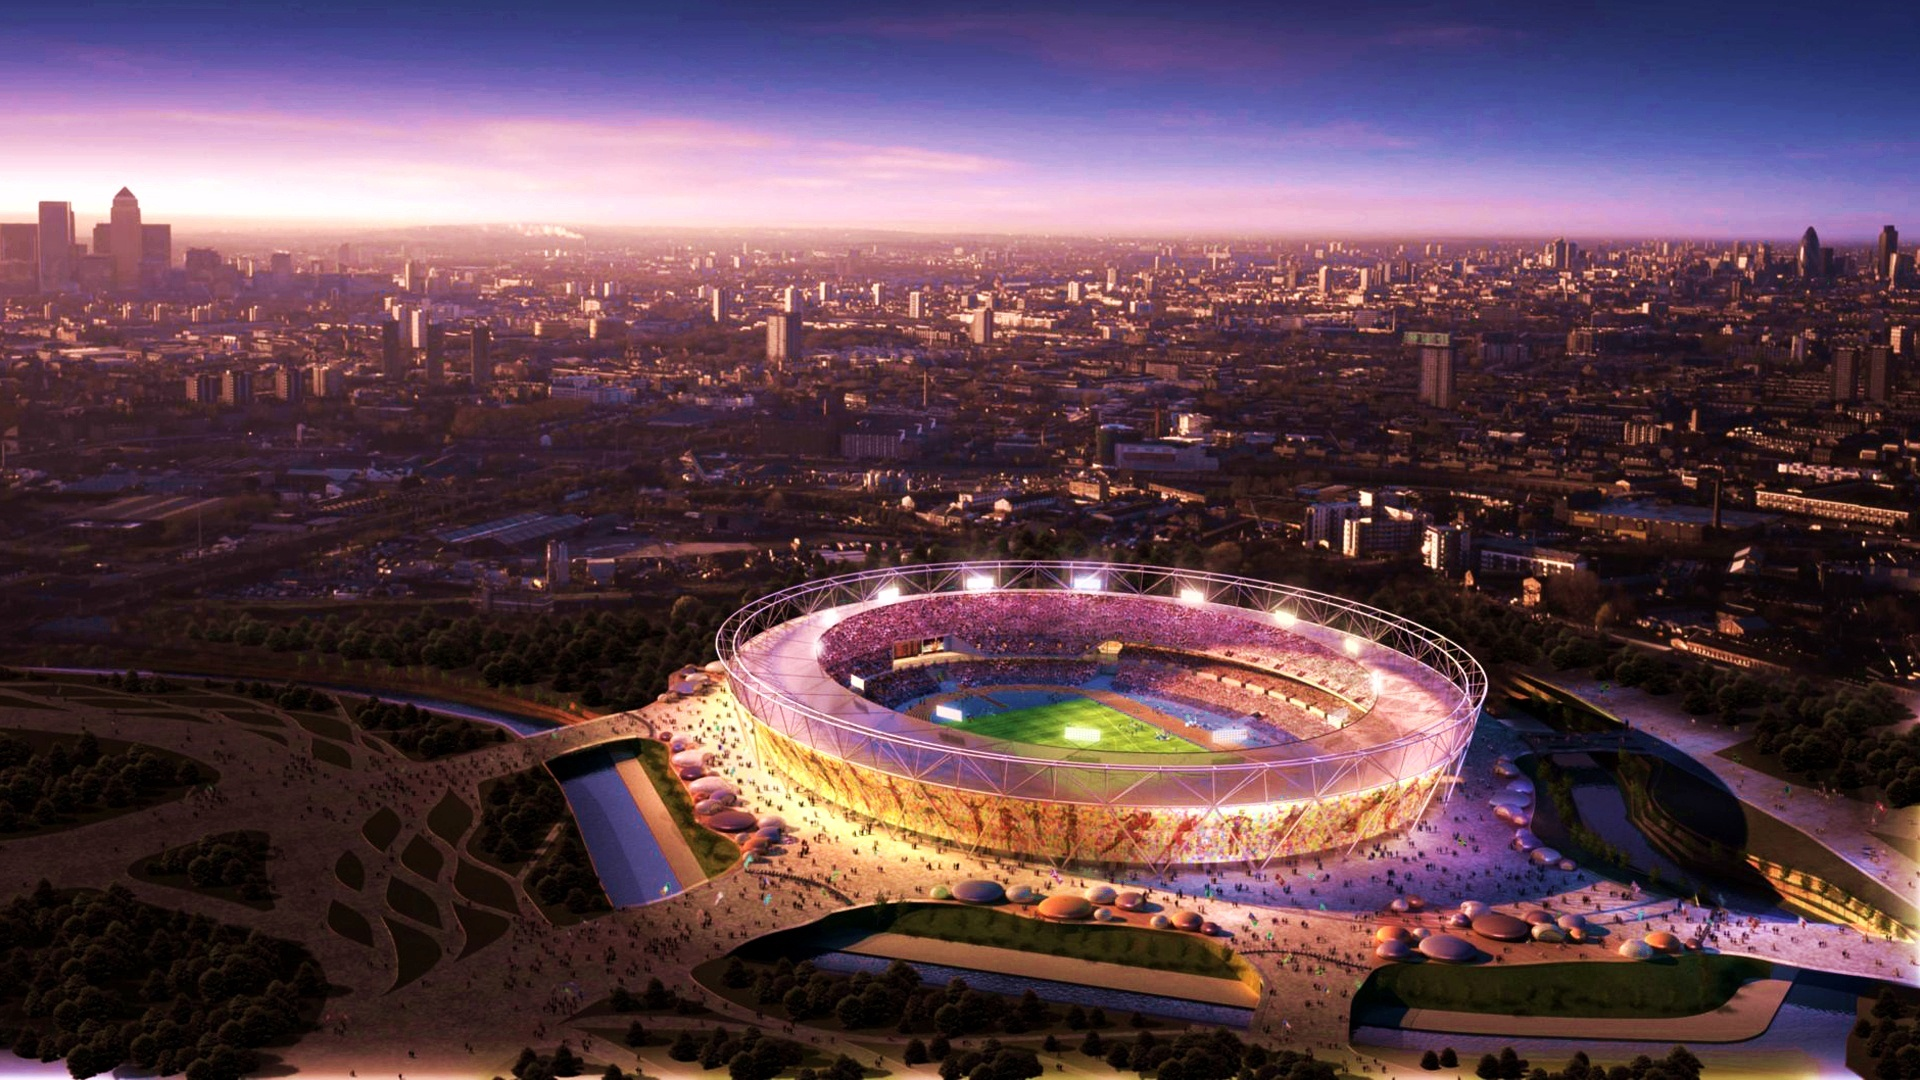 london 2012 - Olympic Hearts